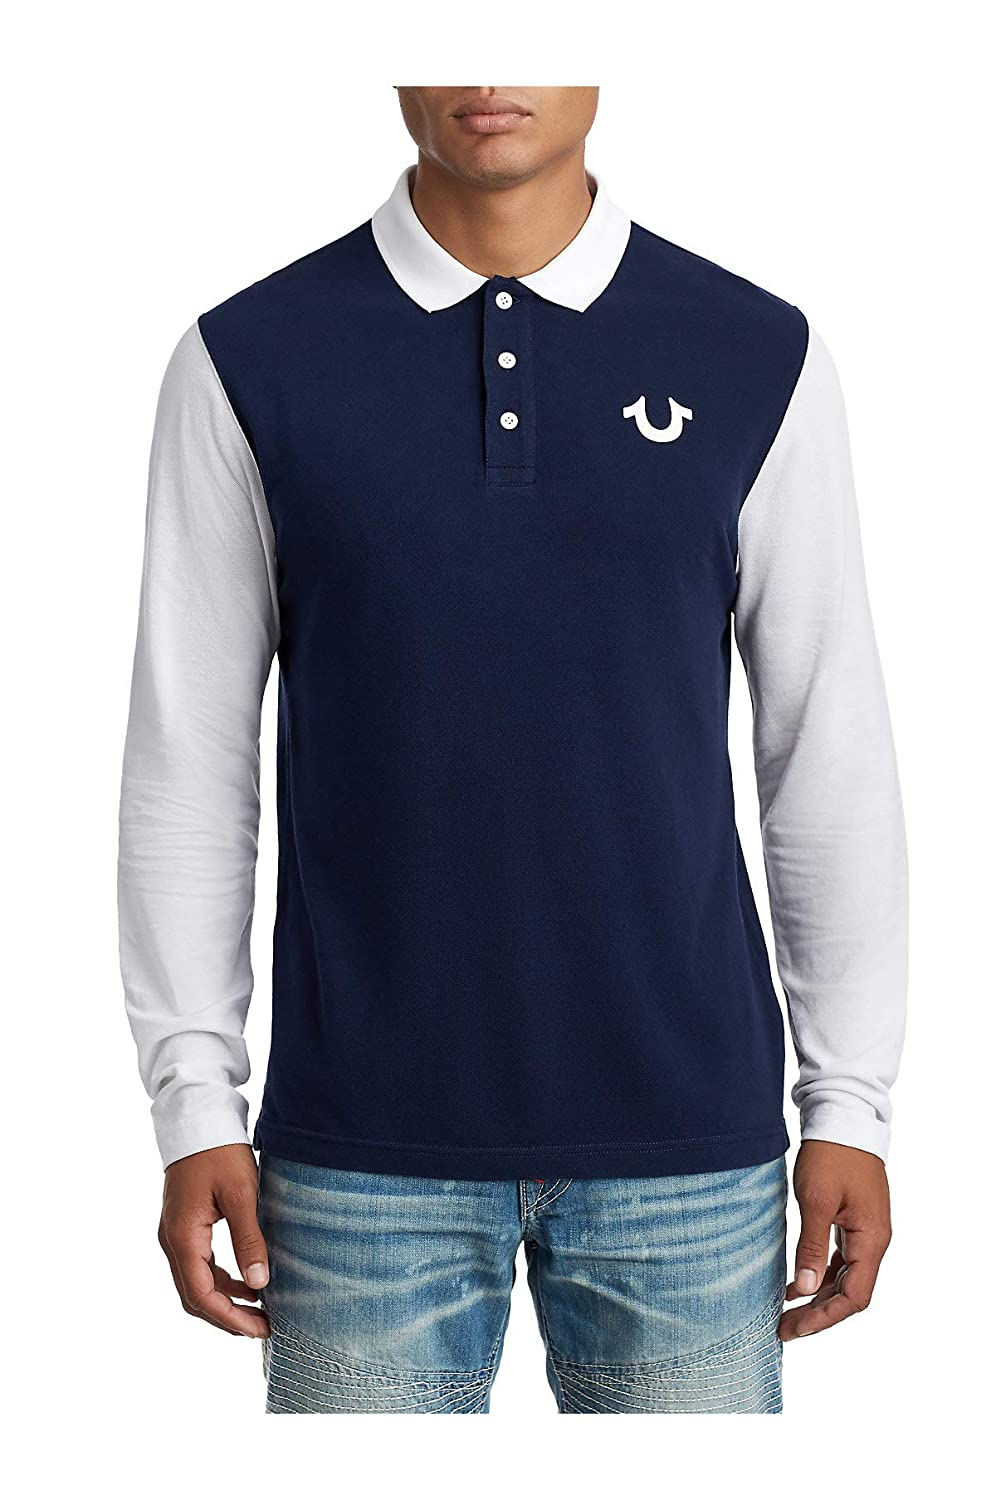 bdf19a50 Amazon.com: True Religion Men's Horseshoe Logo Long Sleeve Polo Shirt:  Clothing